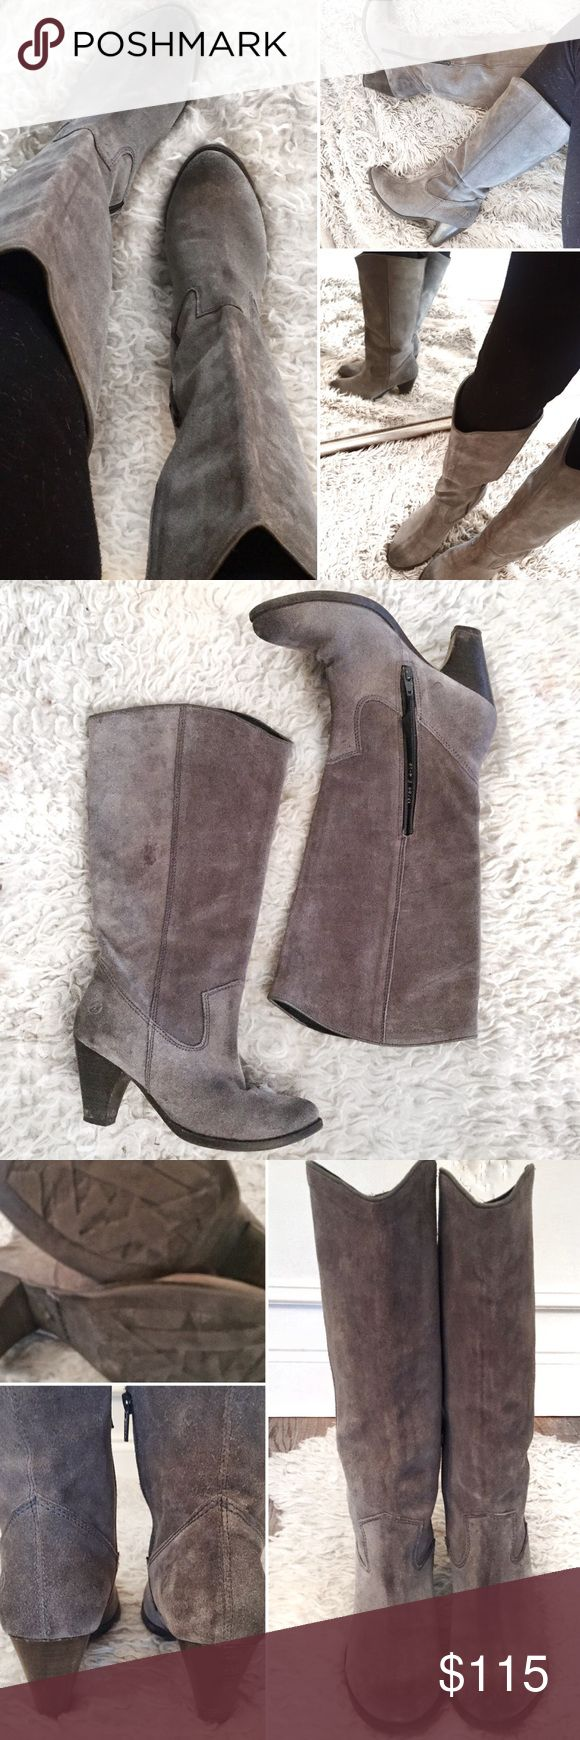 Bronx Distressed Grey Leather Boots Women's Bronx Gray / taupe Distressed Boots. This boot is gorgeous! Beautiful stitching and details throughout. Very well made, high quality!!   The style is so versatile and the color goes great with anything and everything!   Excellent condition!!!!. I purchased them from a boutique for $160 and wore them once and they got shoved to the back of my closet!   Reasonable Offers Welcome! Bronx Shoes Heeled Boots